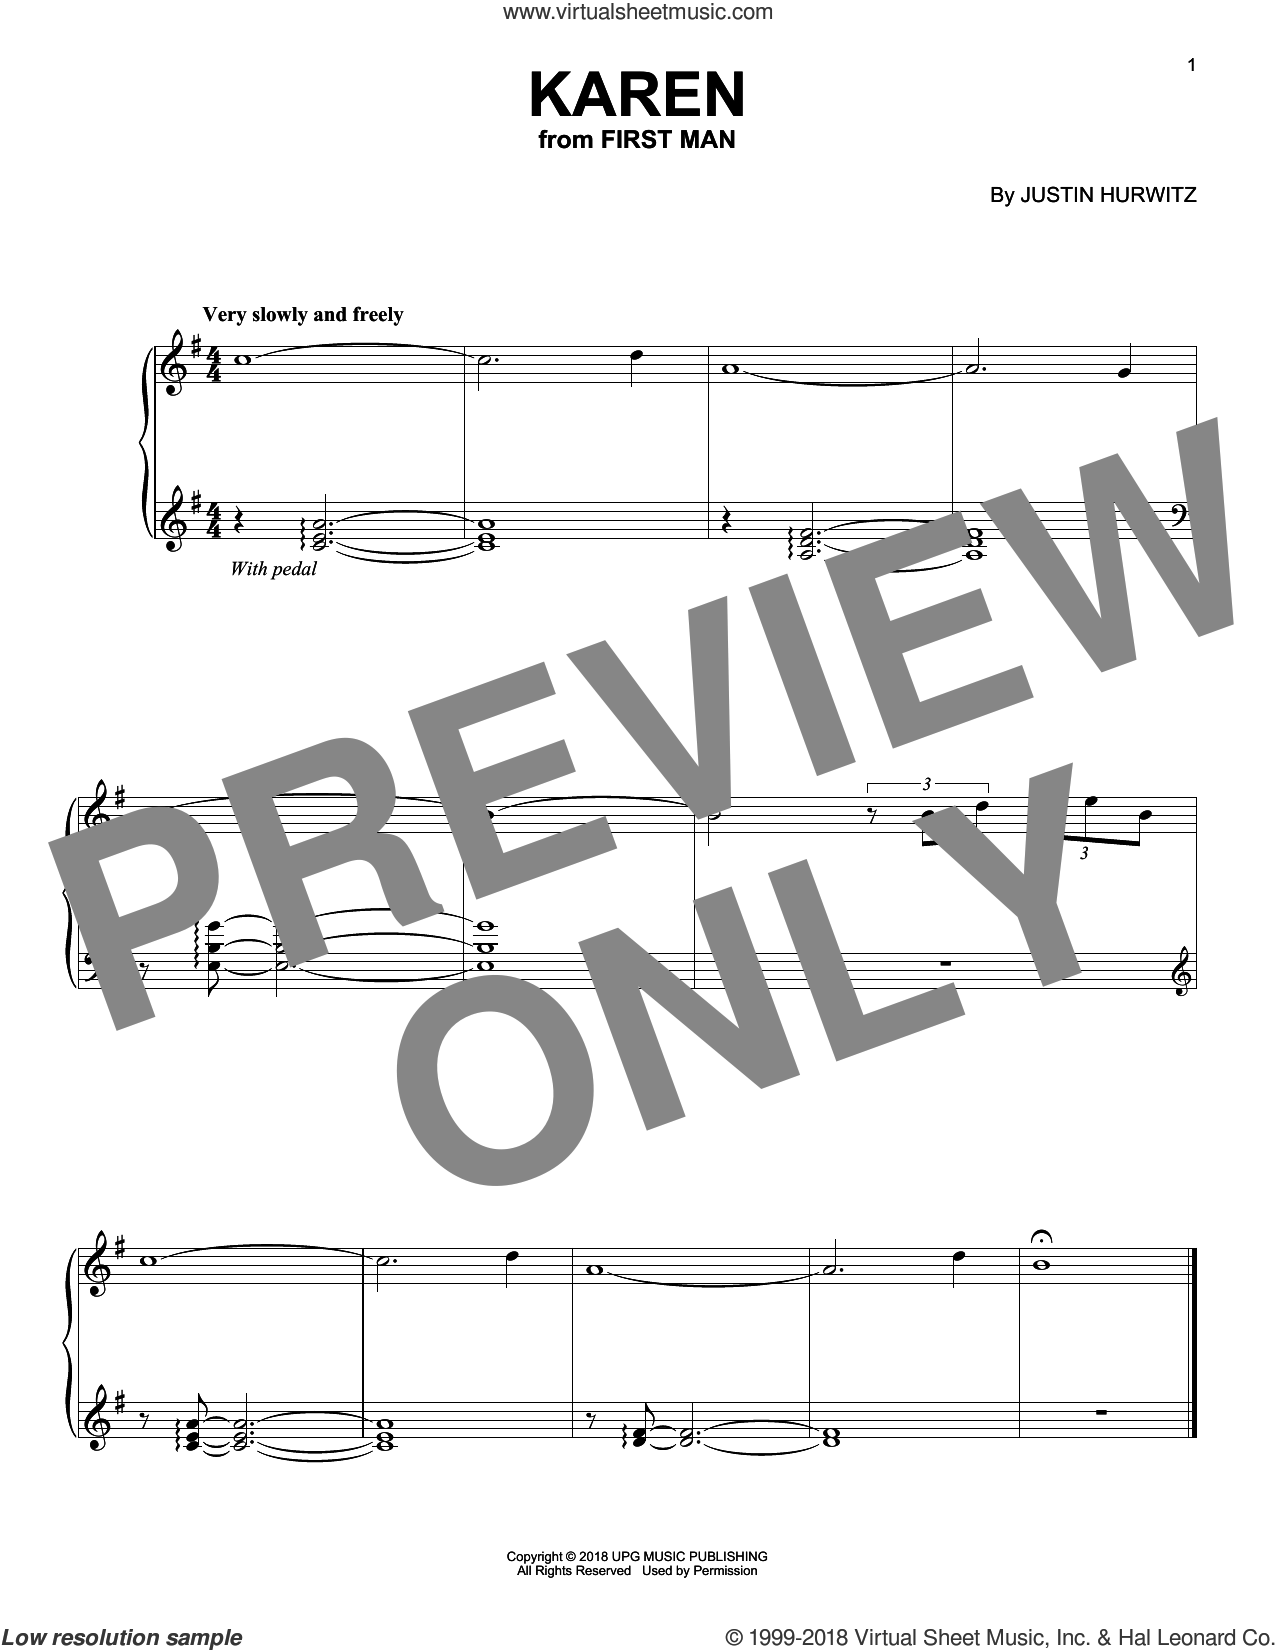 Karen (from First Man) sheet music for piano solo by Justin Hurwitz, intermediate skill level